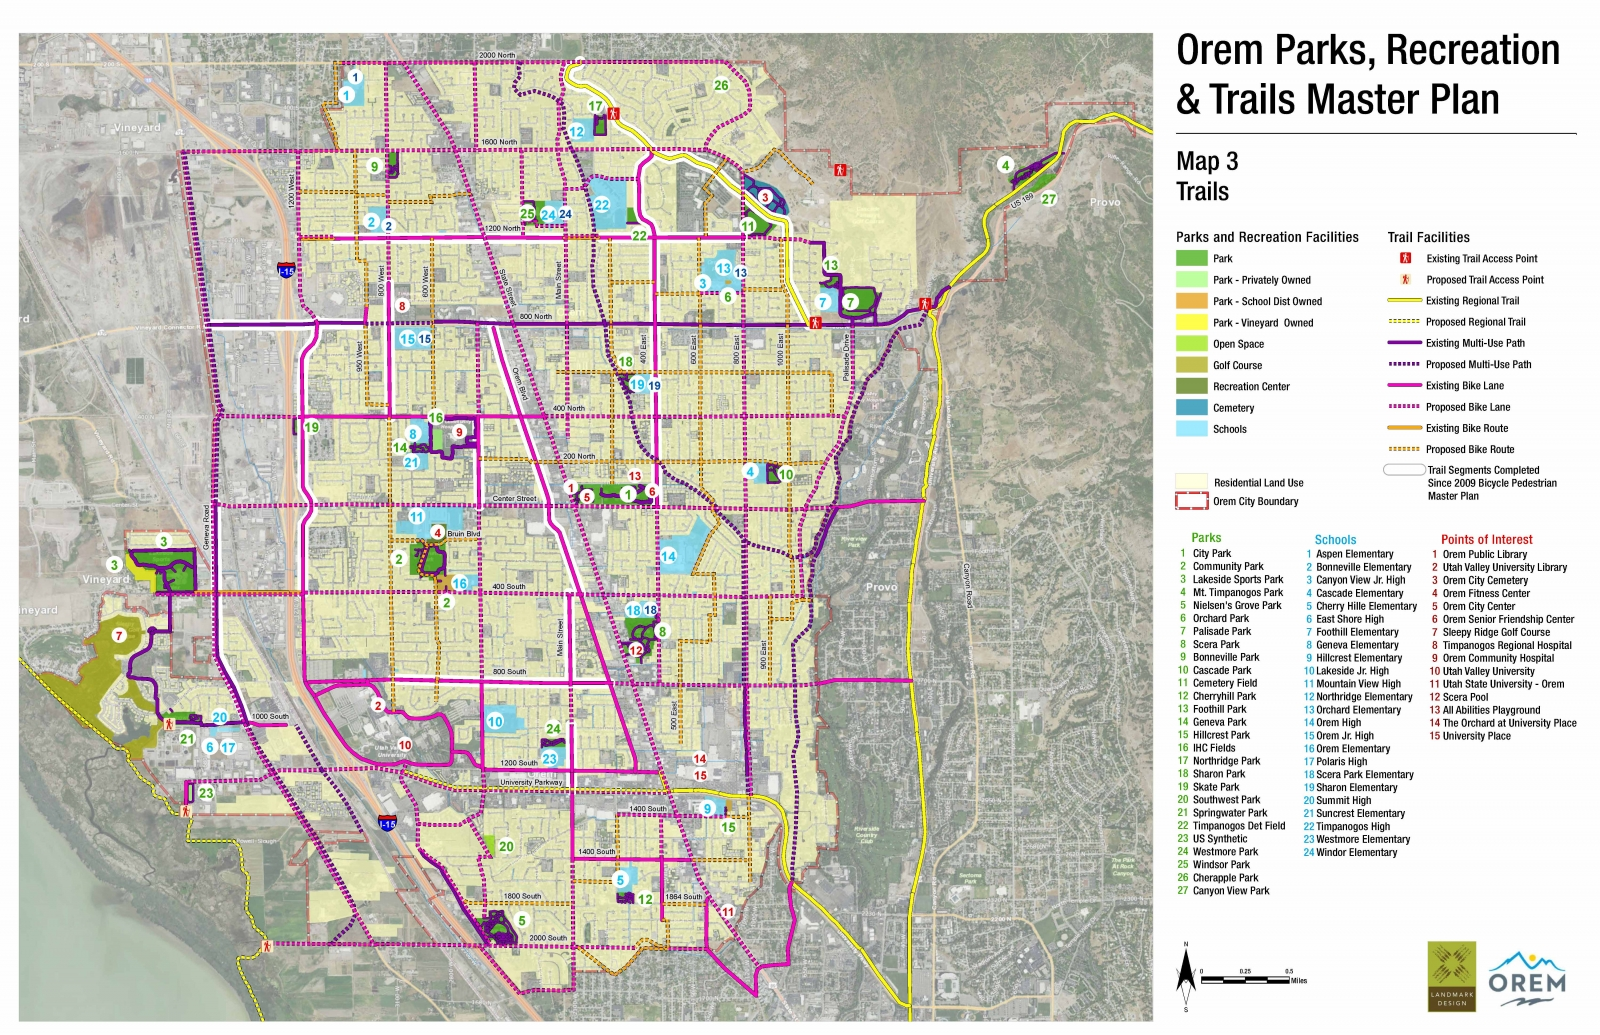 Parks, Recreation, Trails & Open Space Master Plans